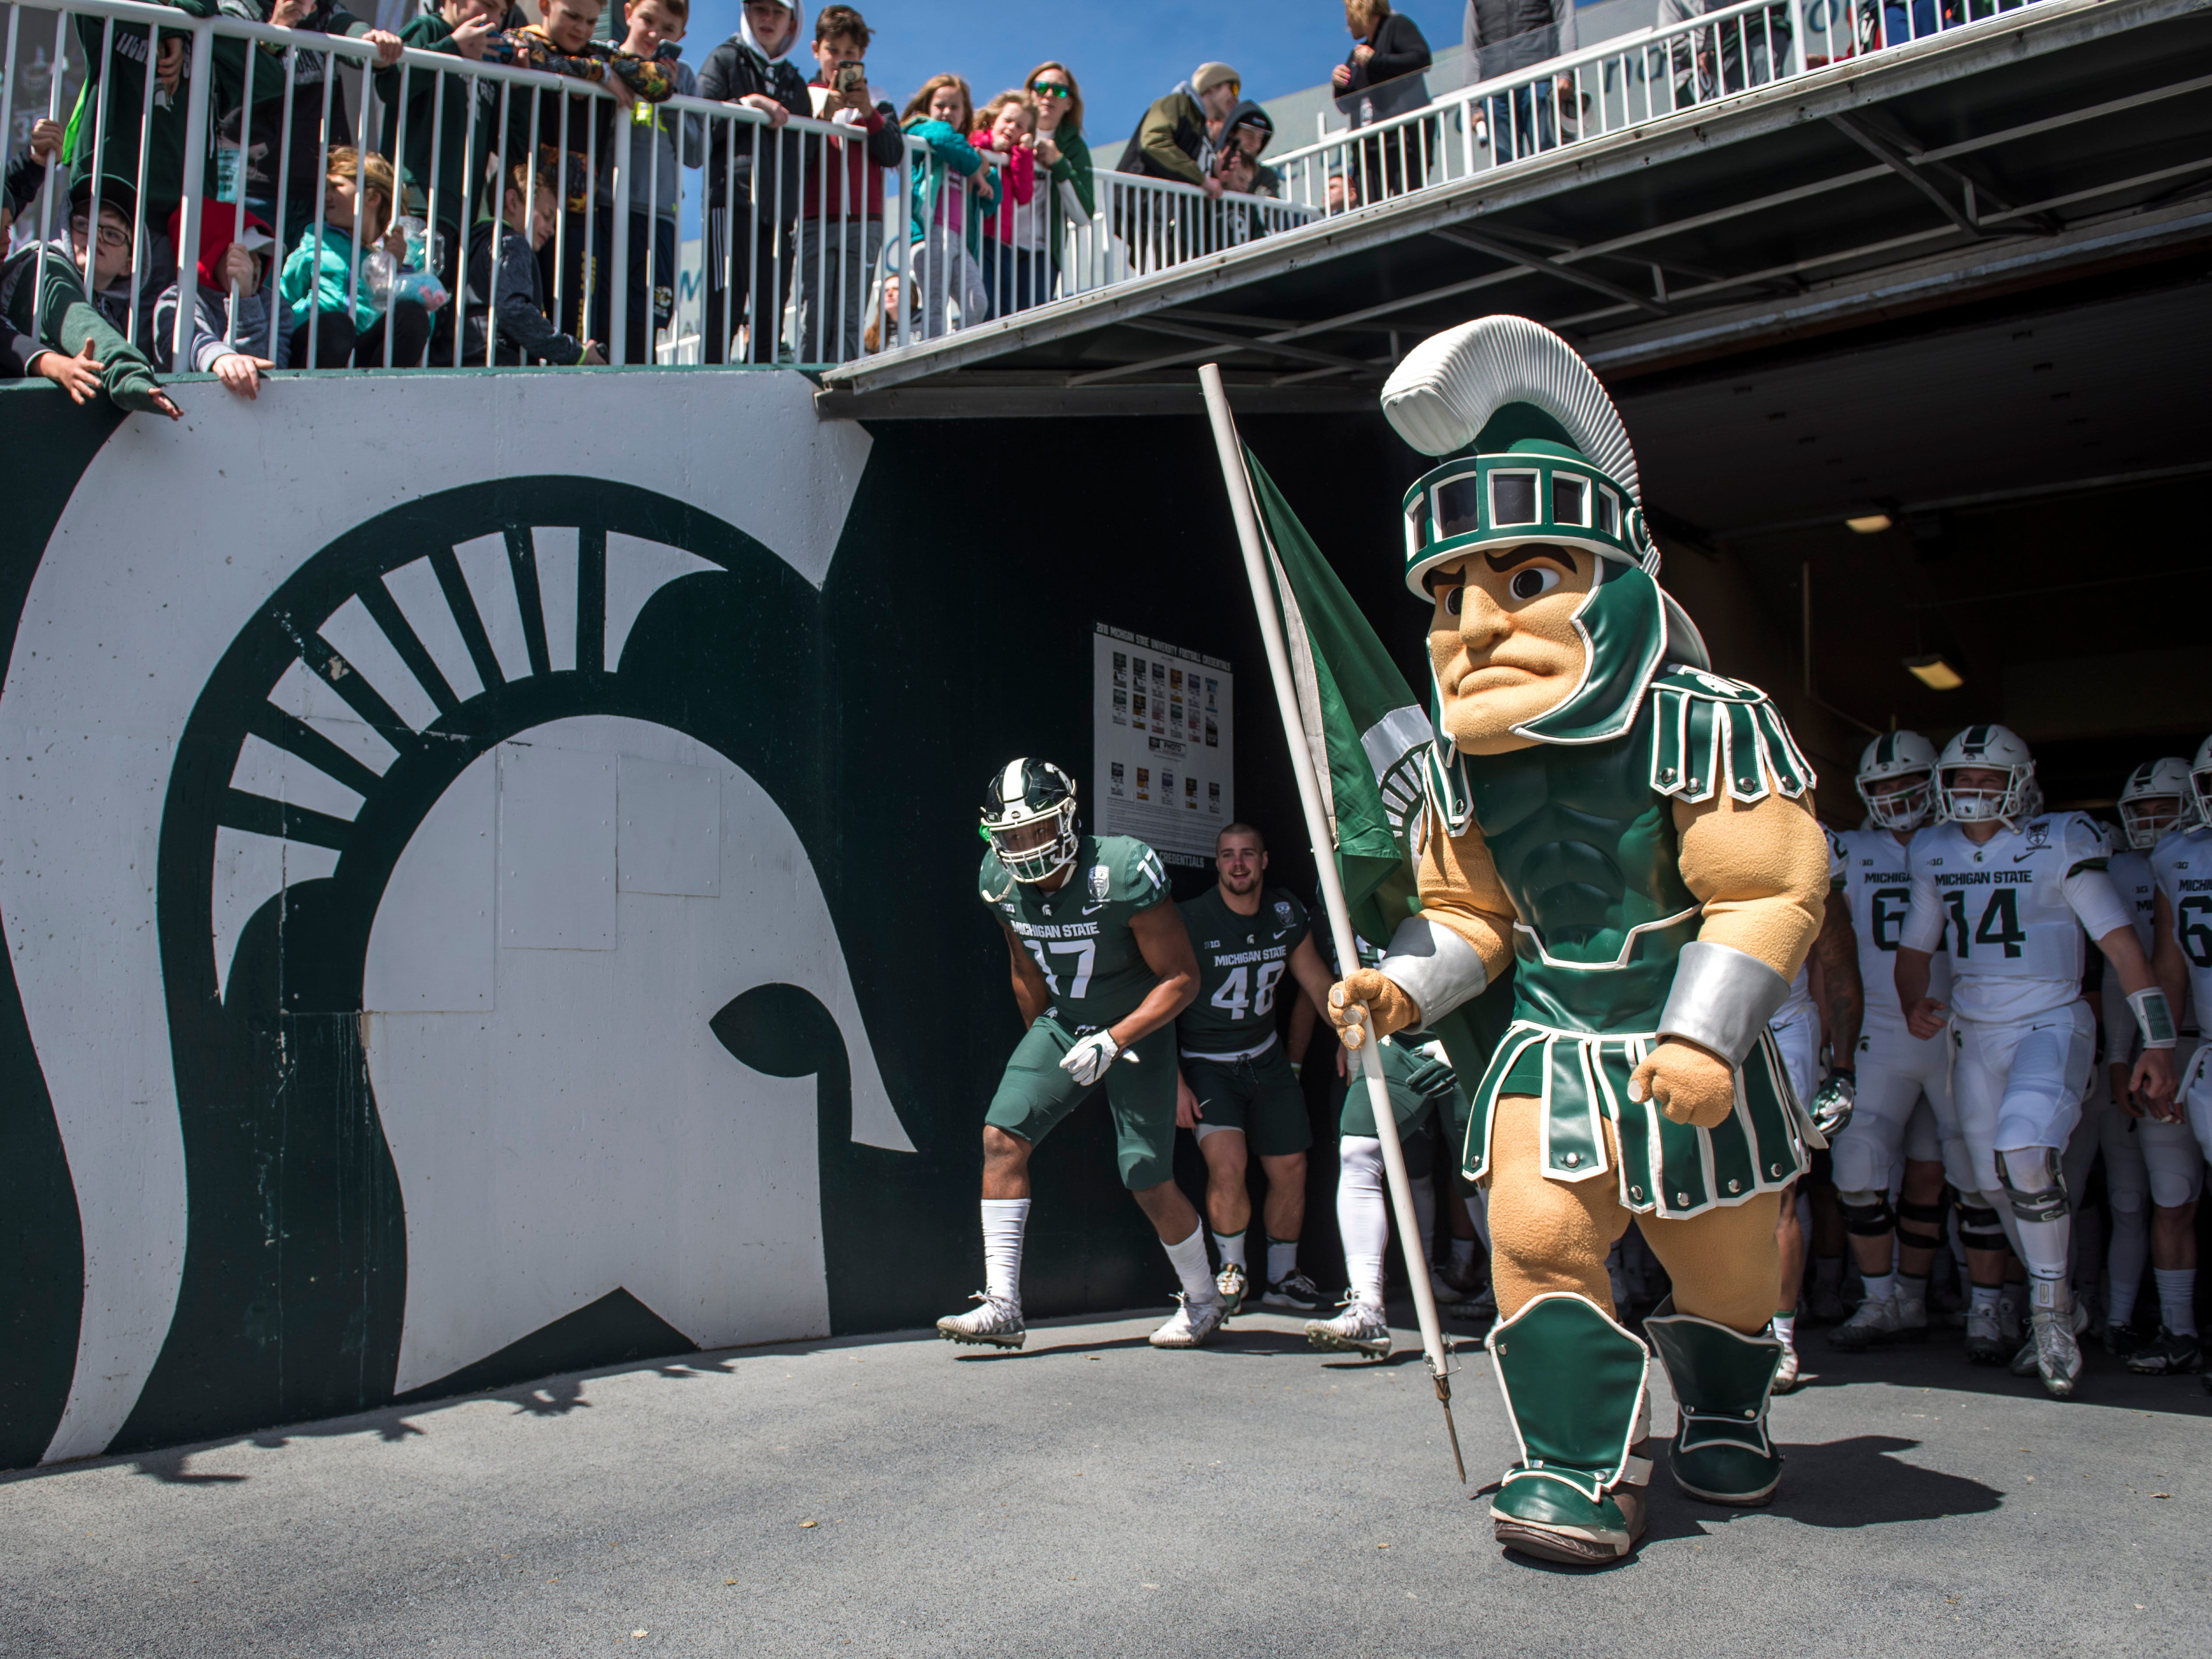 Sparty leads out the football team.